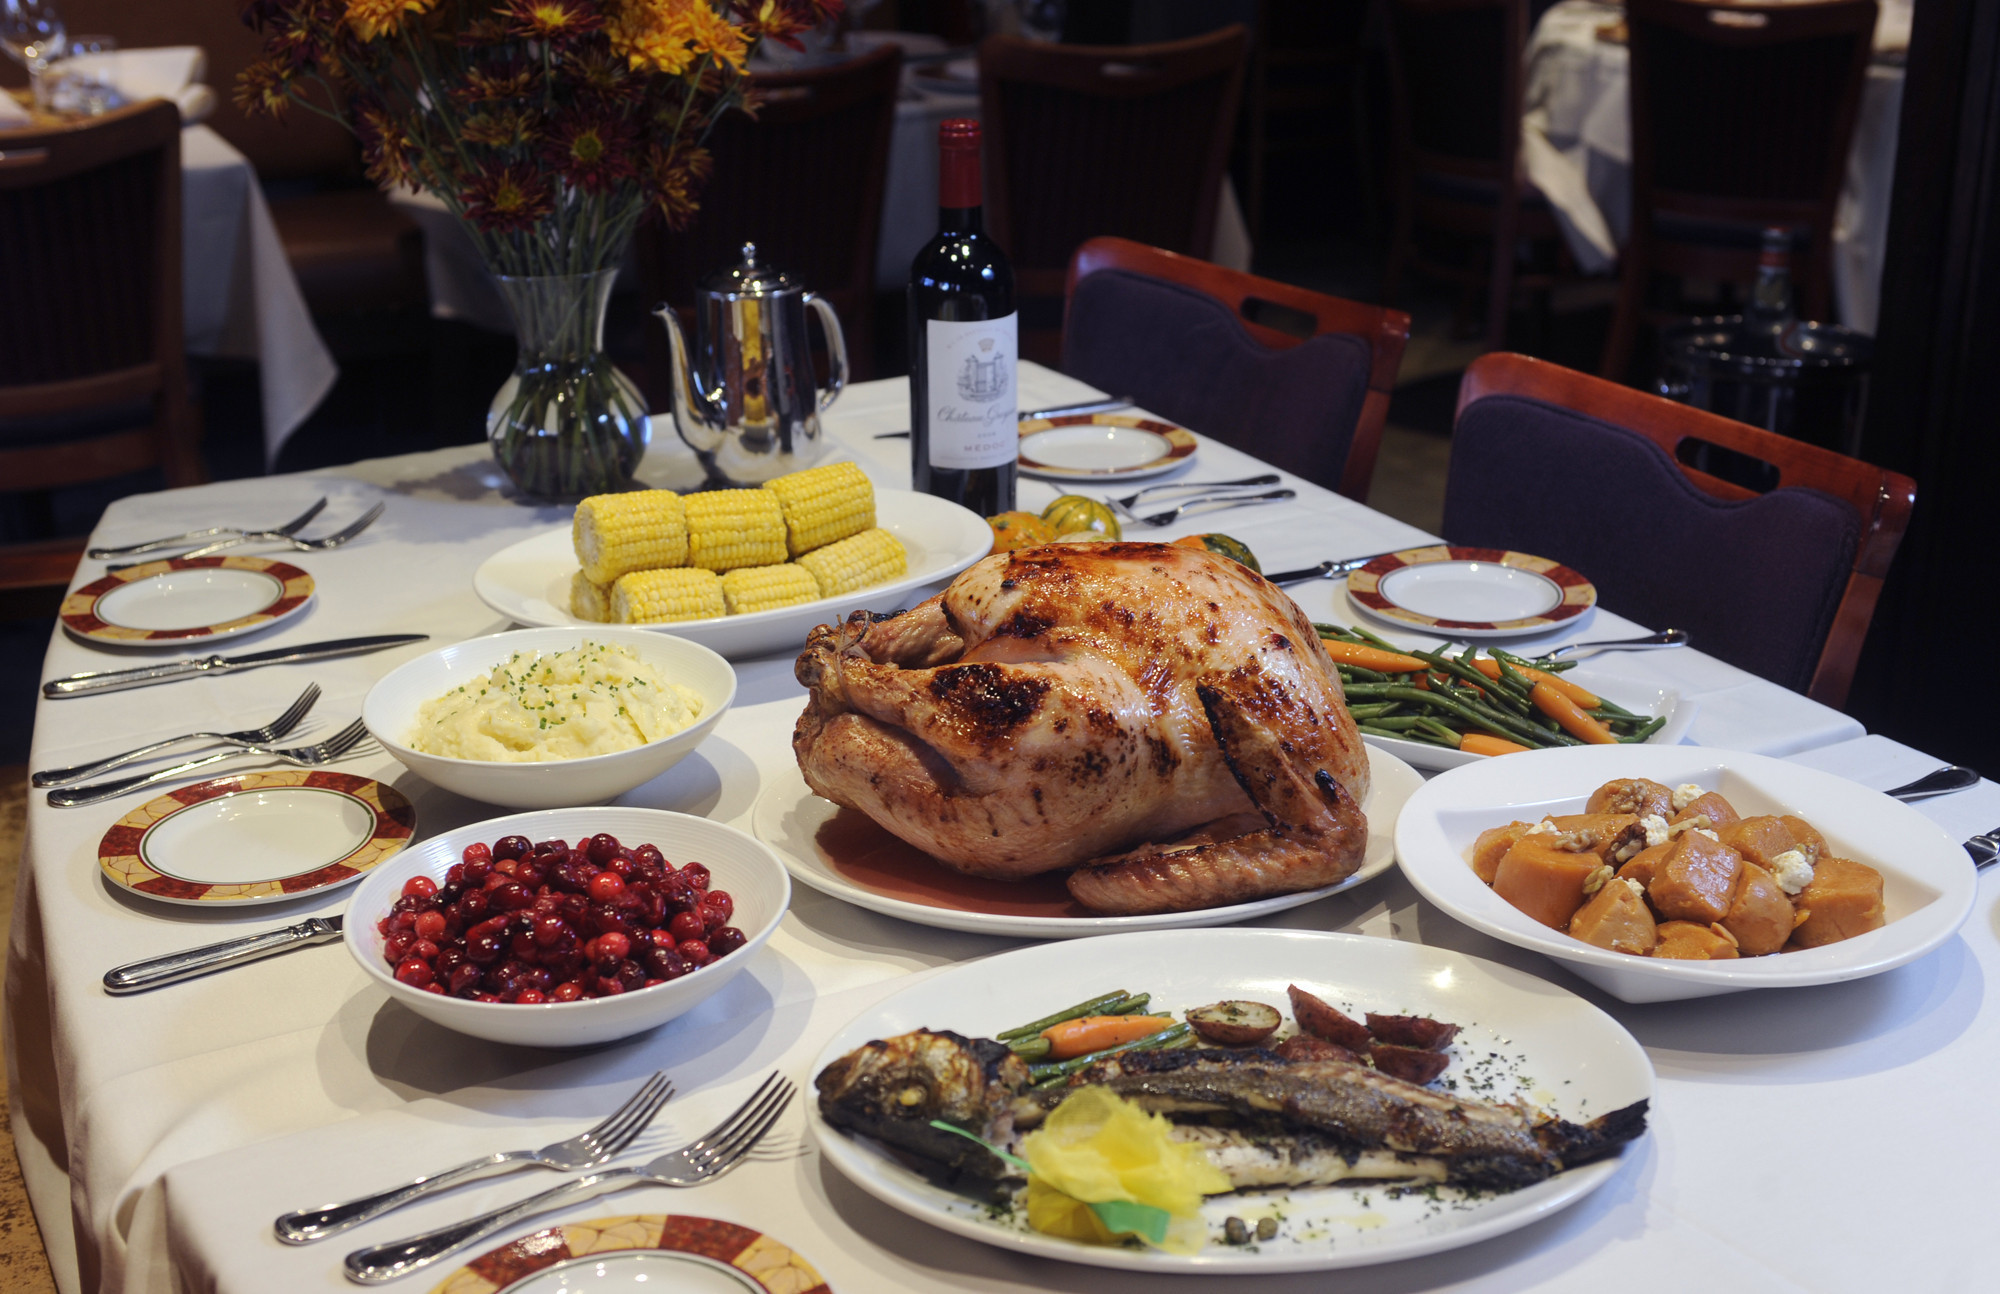 Restaurant Thanksgiving Dinner  10 great Thanksgiving dishes at Baltimore restaurants